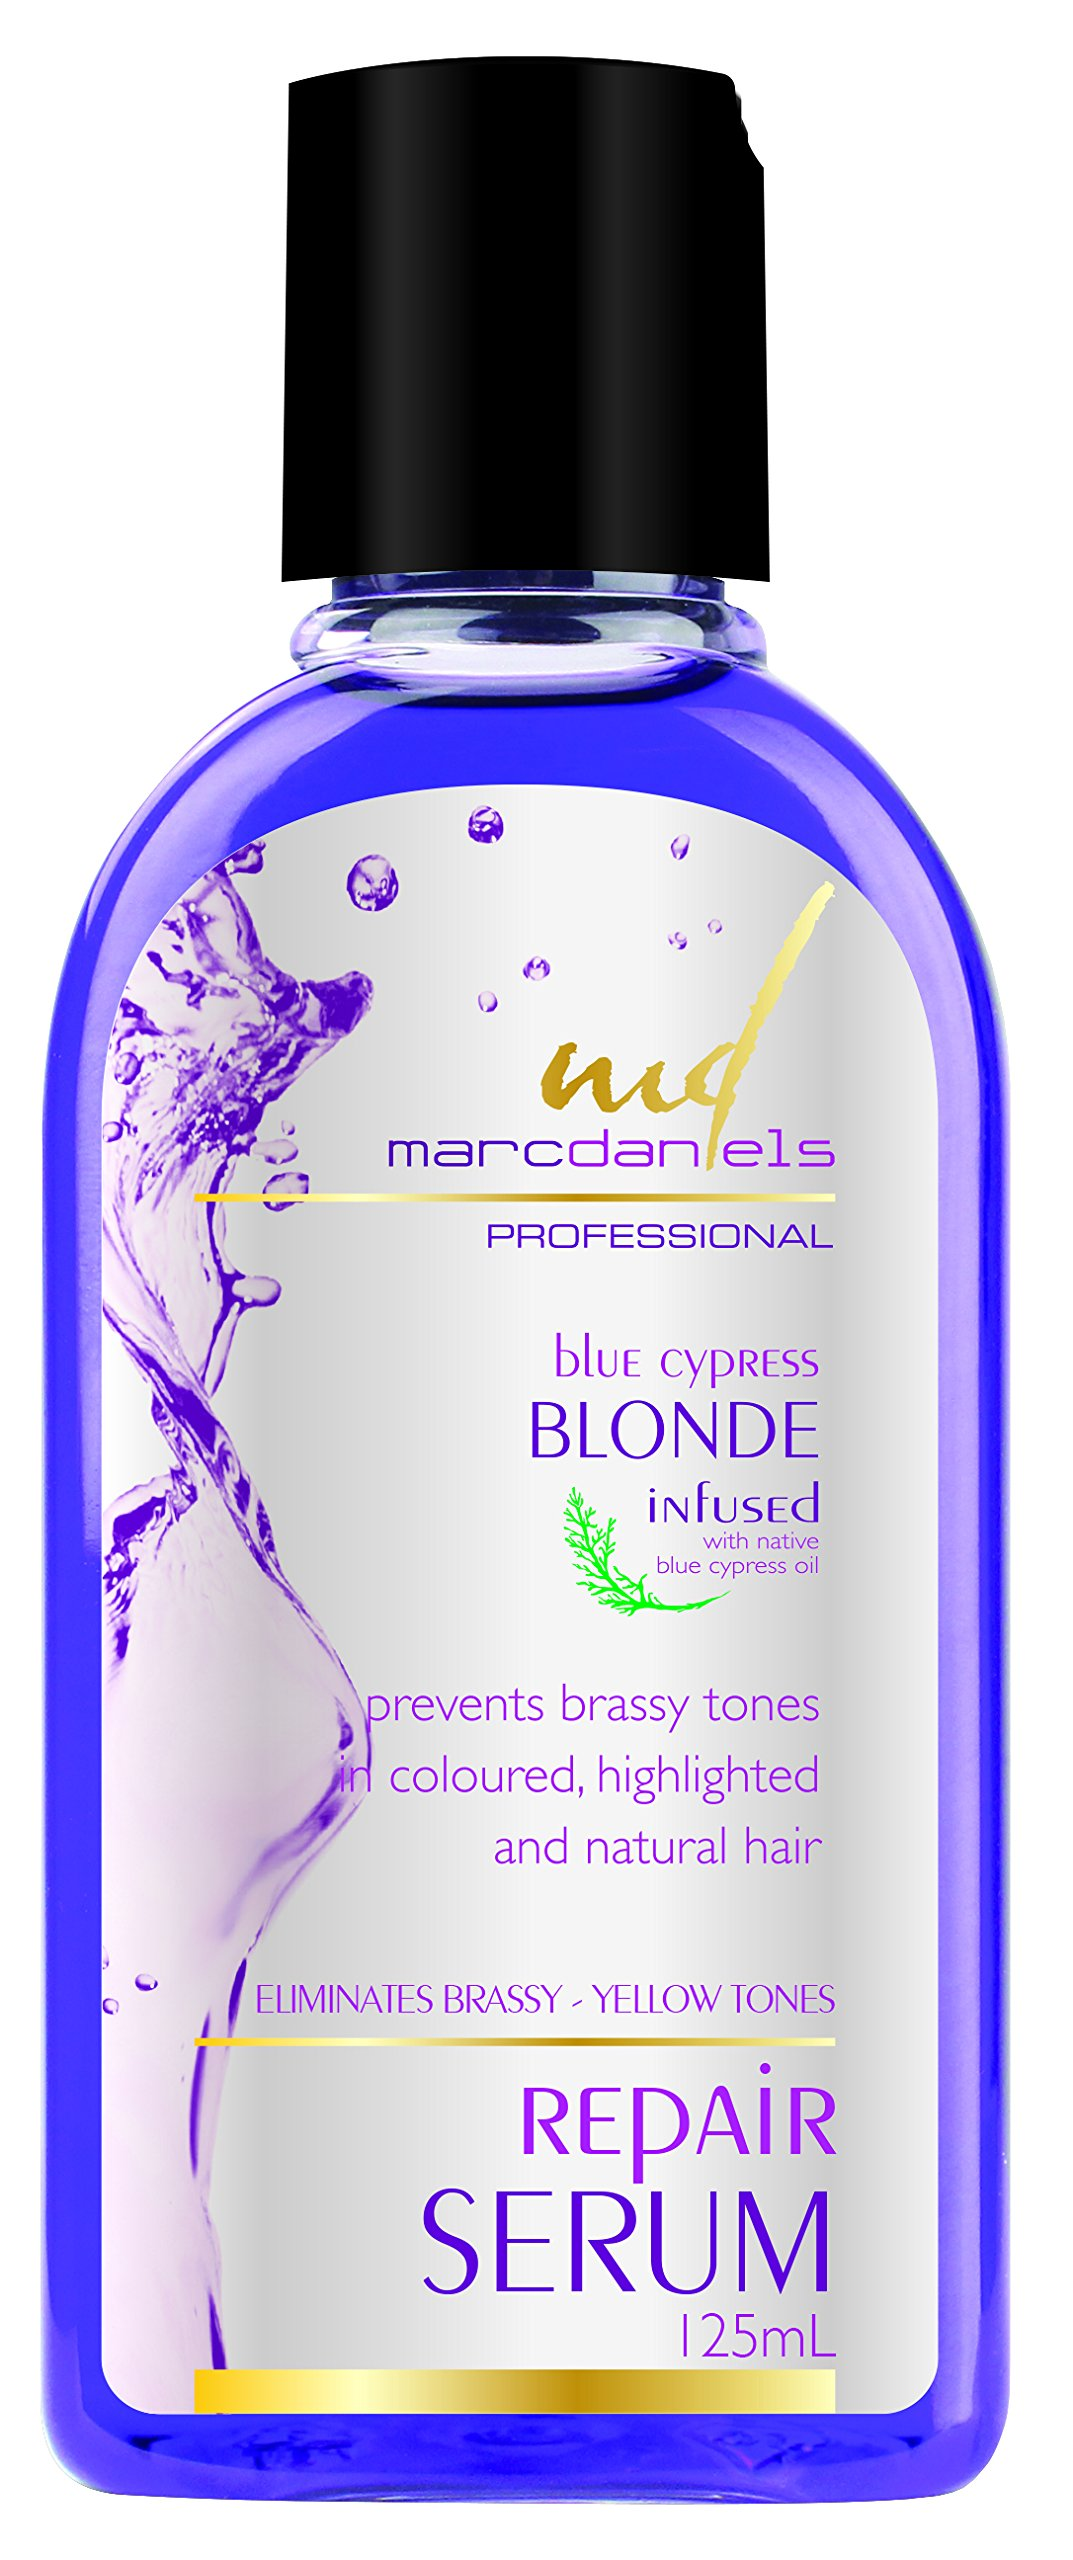 Purple Hair Repair Serum Treatment. Neutralize Brassy Yellow Tones, Detangle & Defreeze. For Blonde, Color Treated, & Gray Hair. Blue Cypress and Moroccan Argan Oil by MARC DANIELS Professional